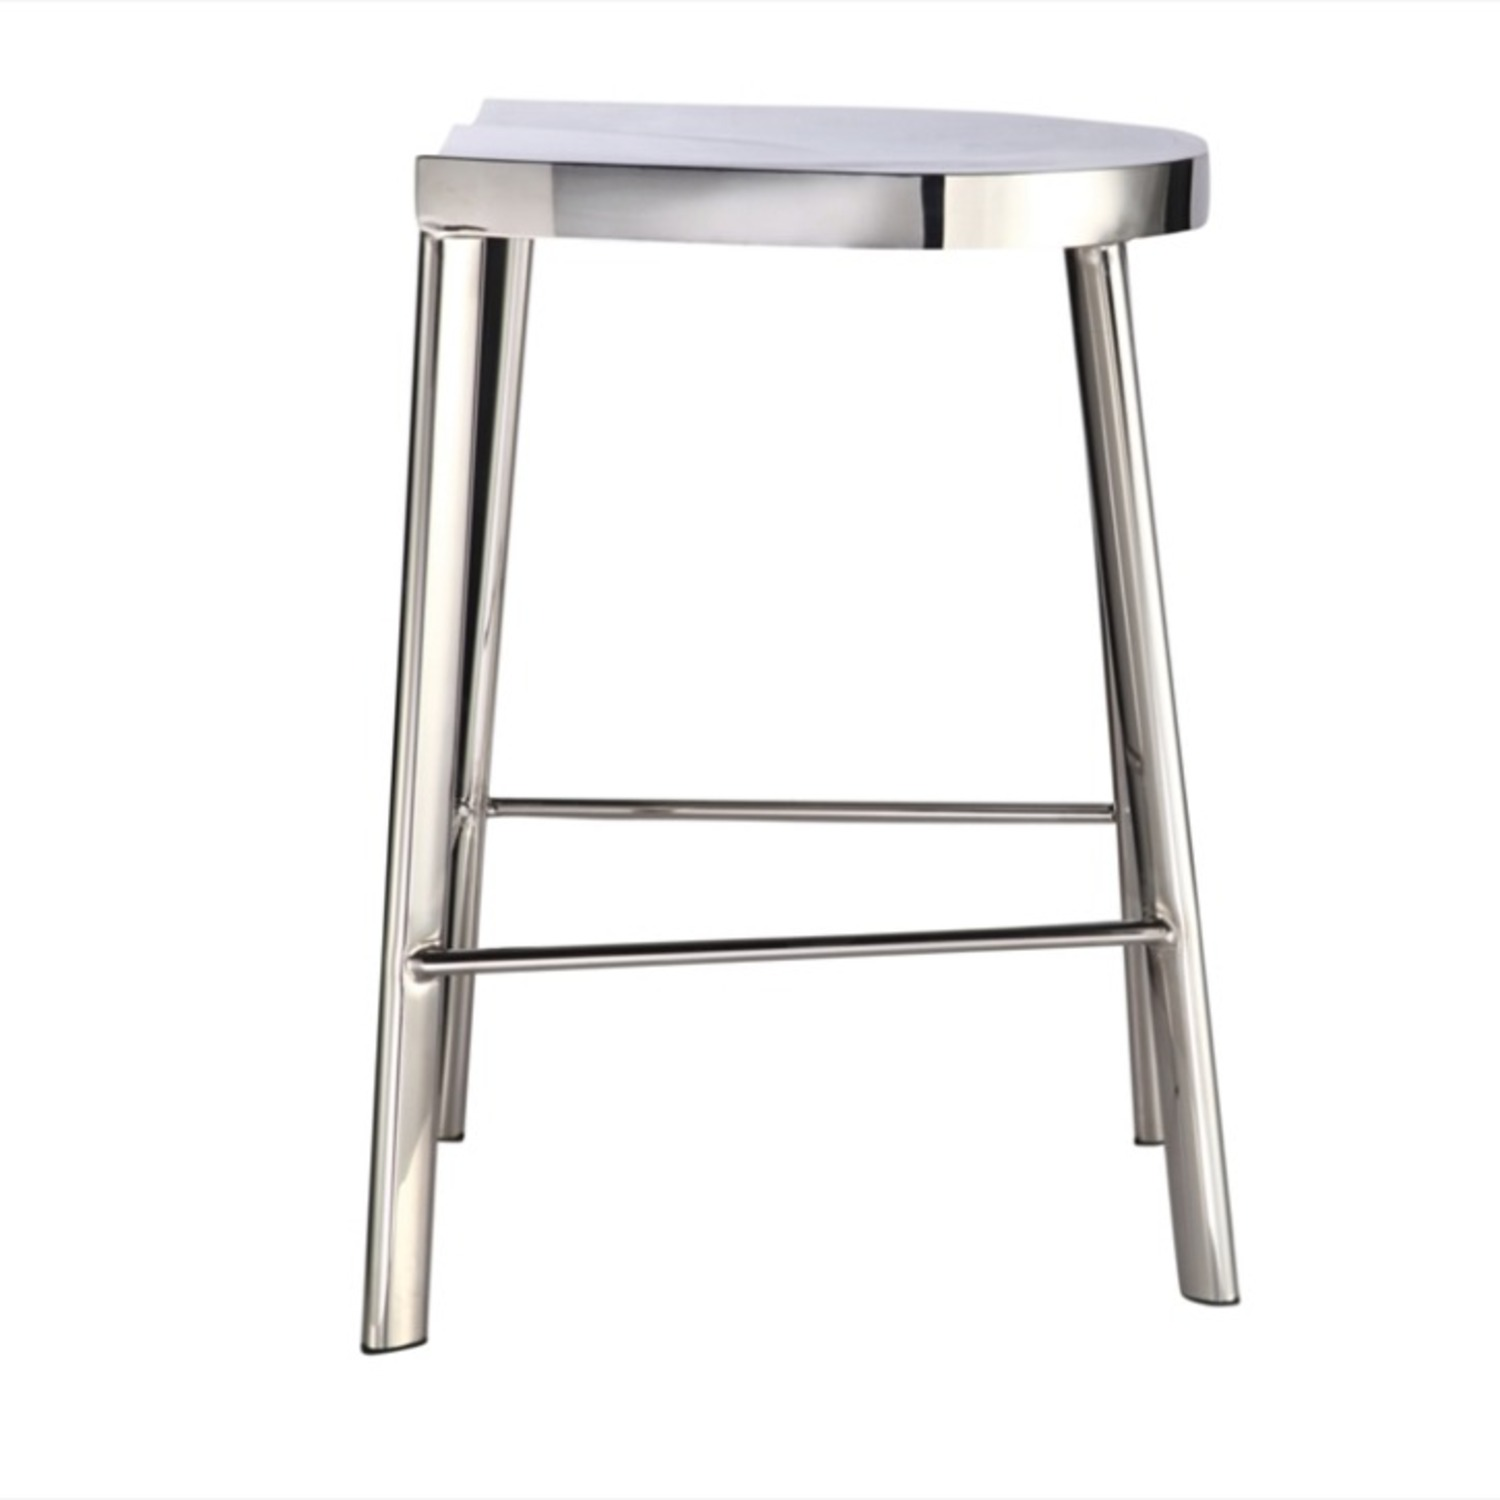 Modern Counter Stool In Silver Stainless Steel  - image-3